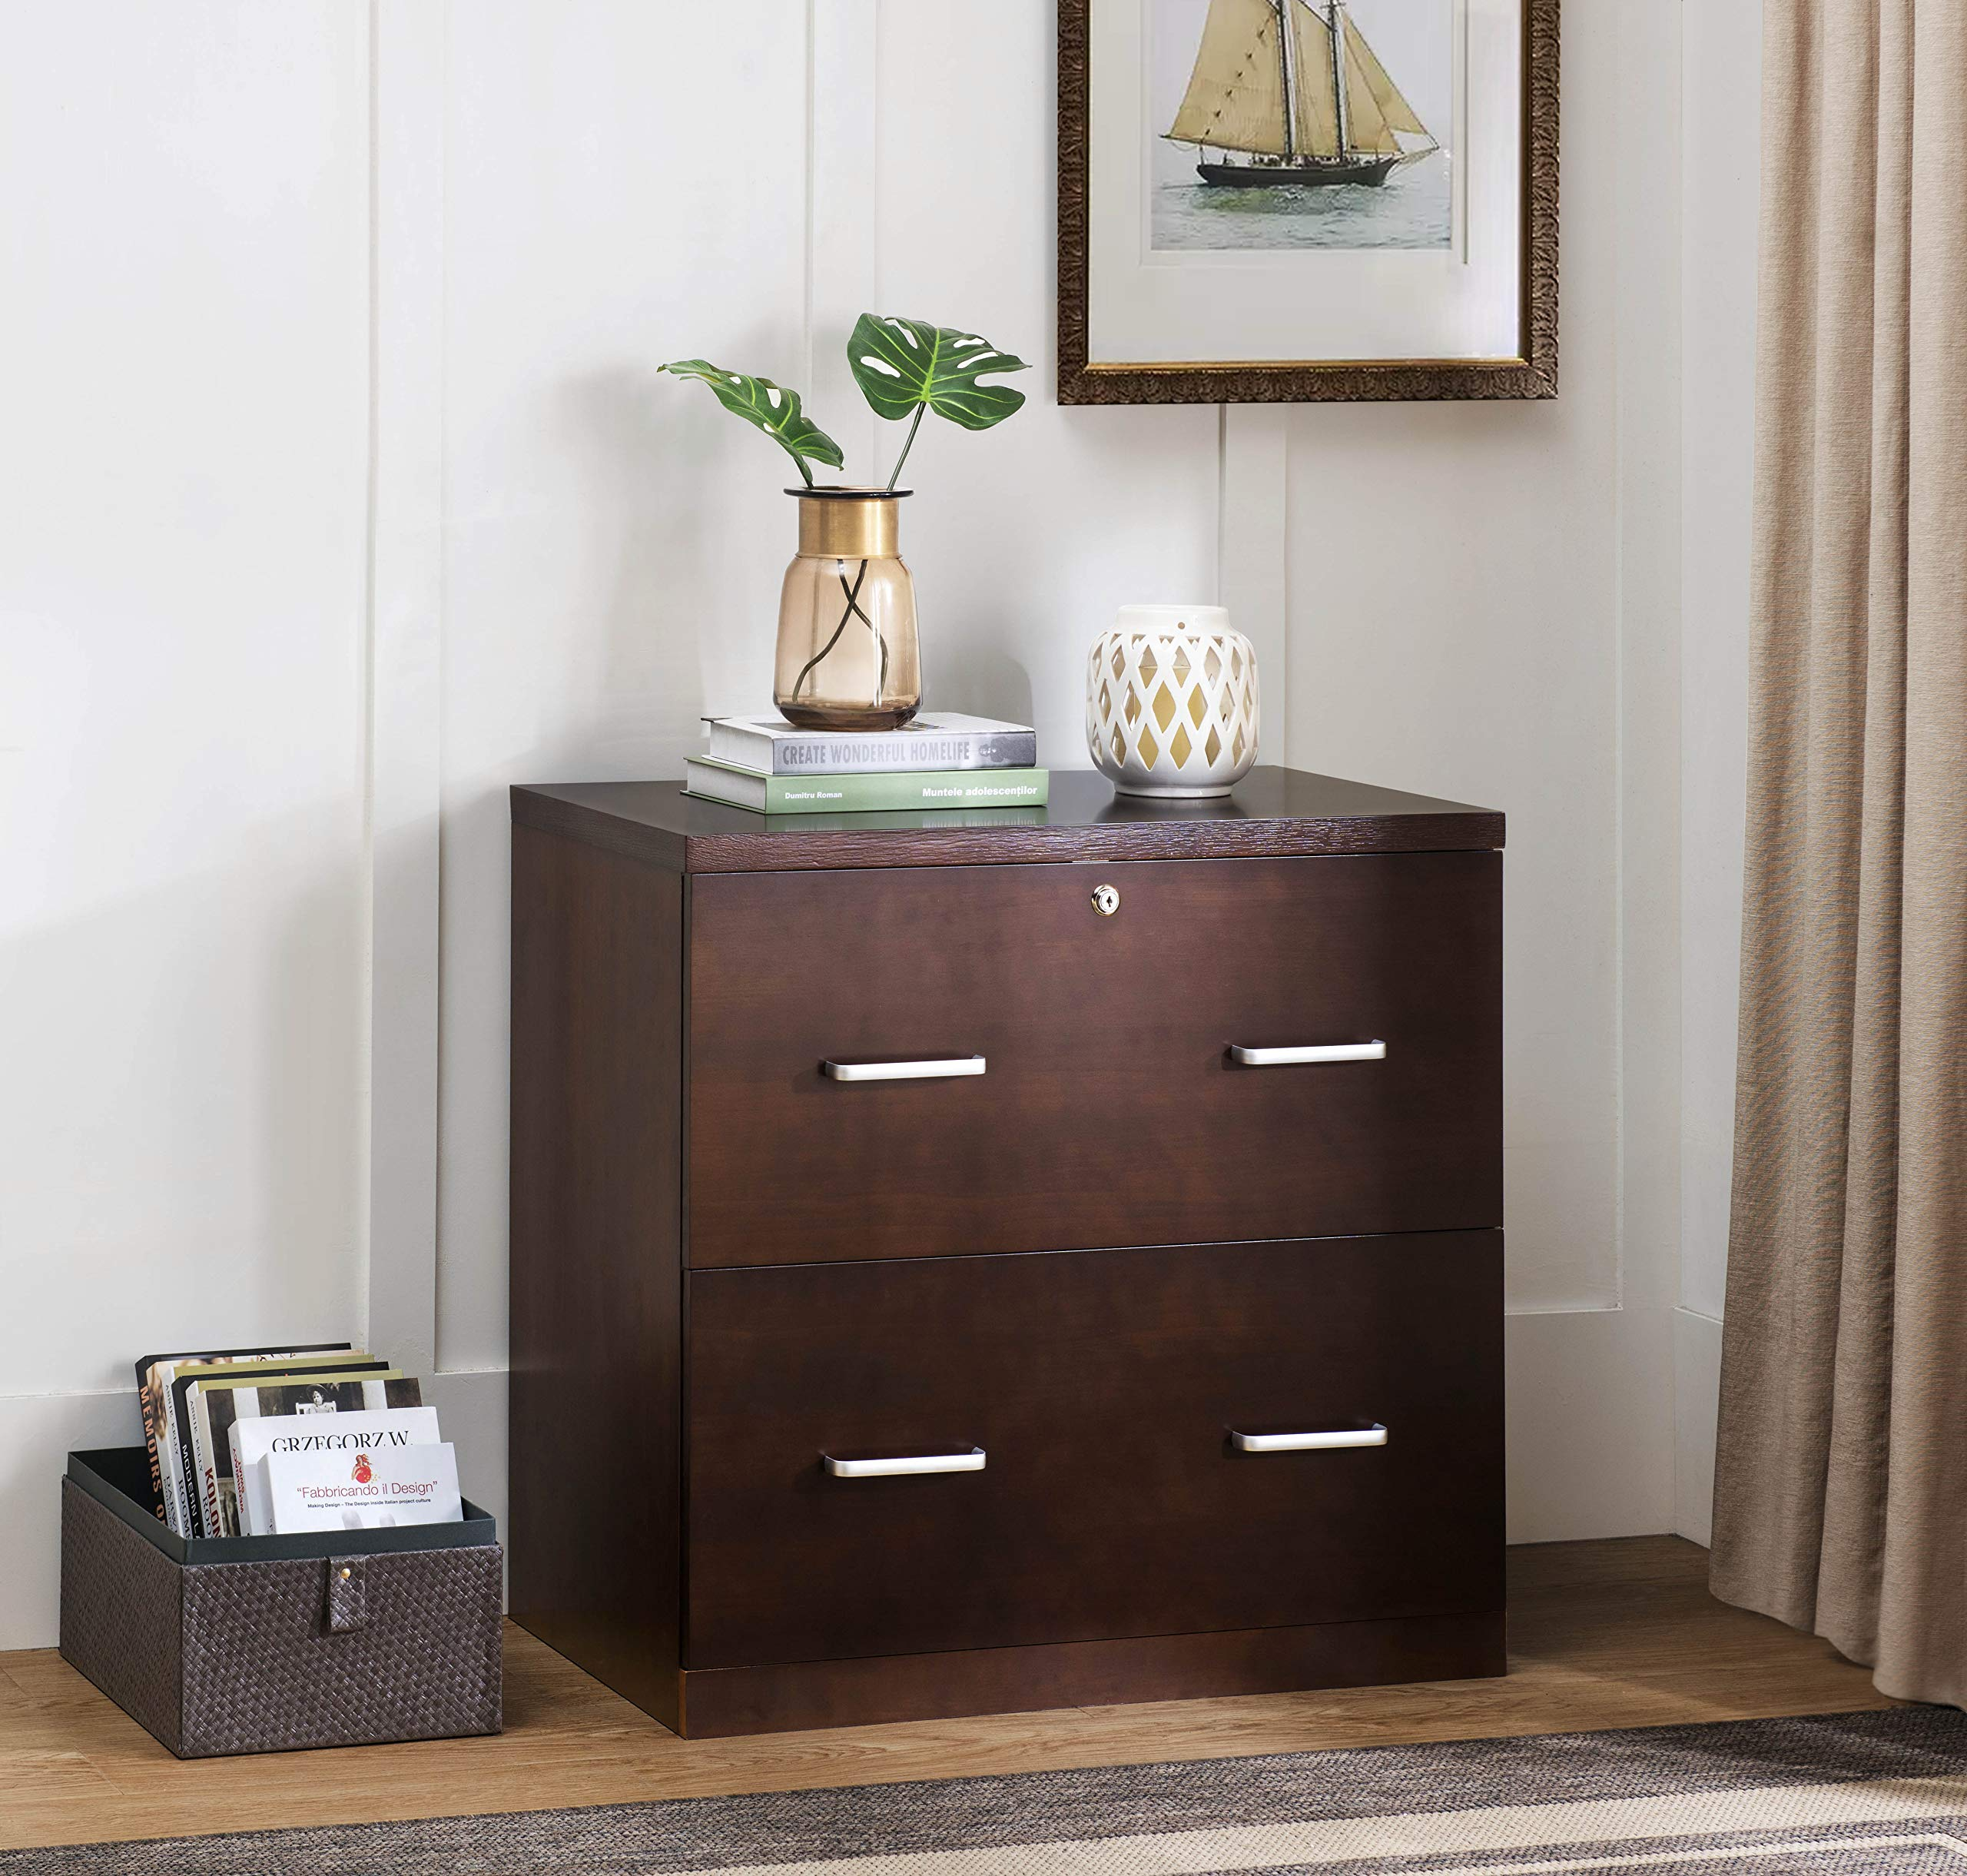 2L Lifestyle Hanover 2-Drawer File Cabinet, Brown